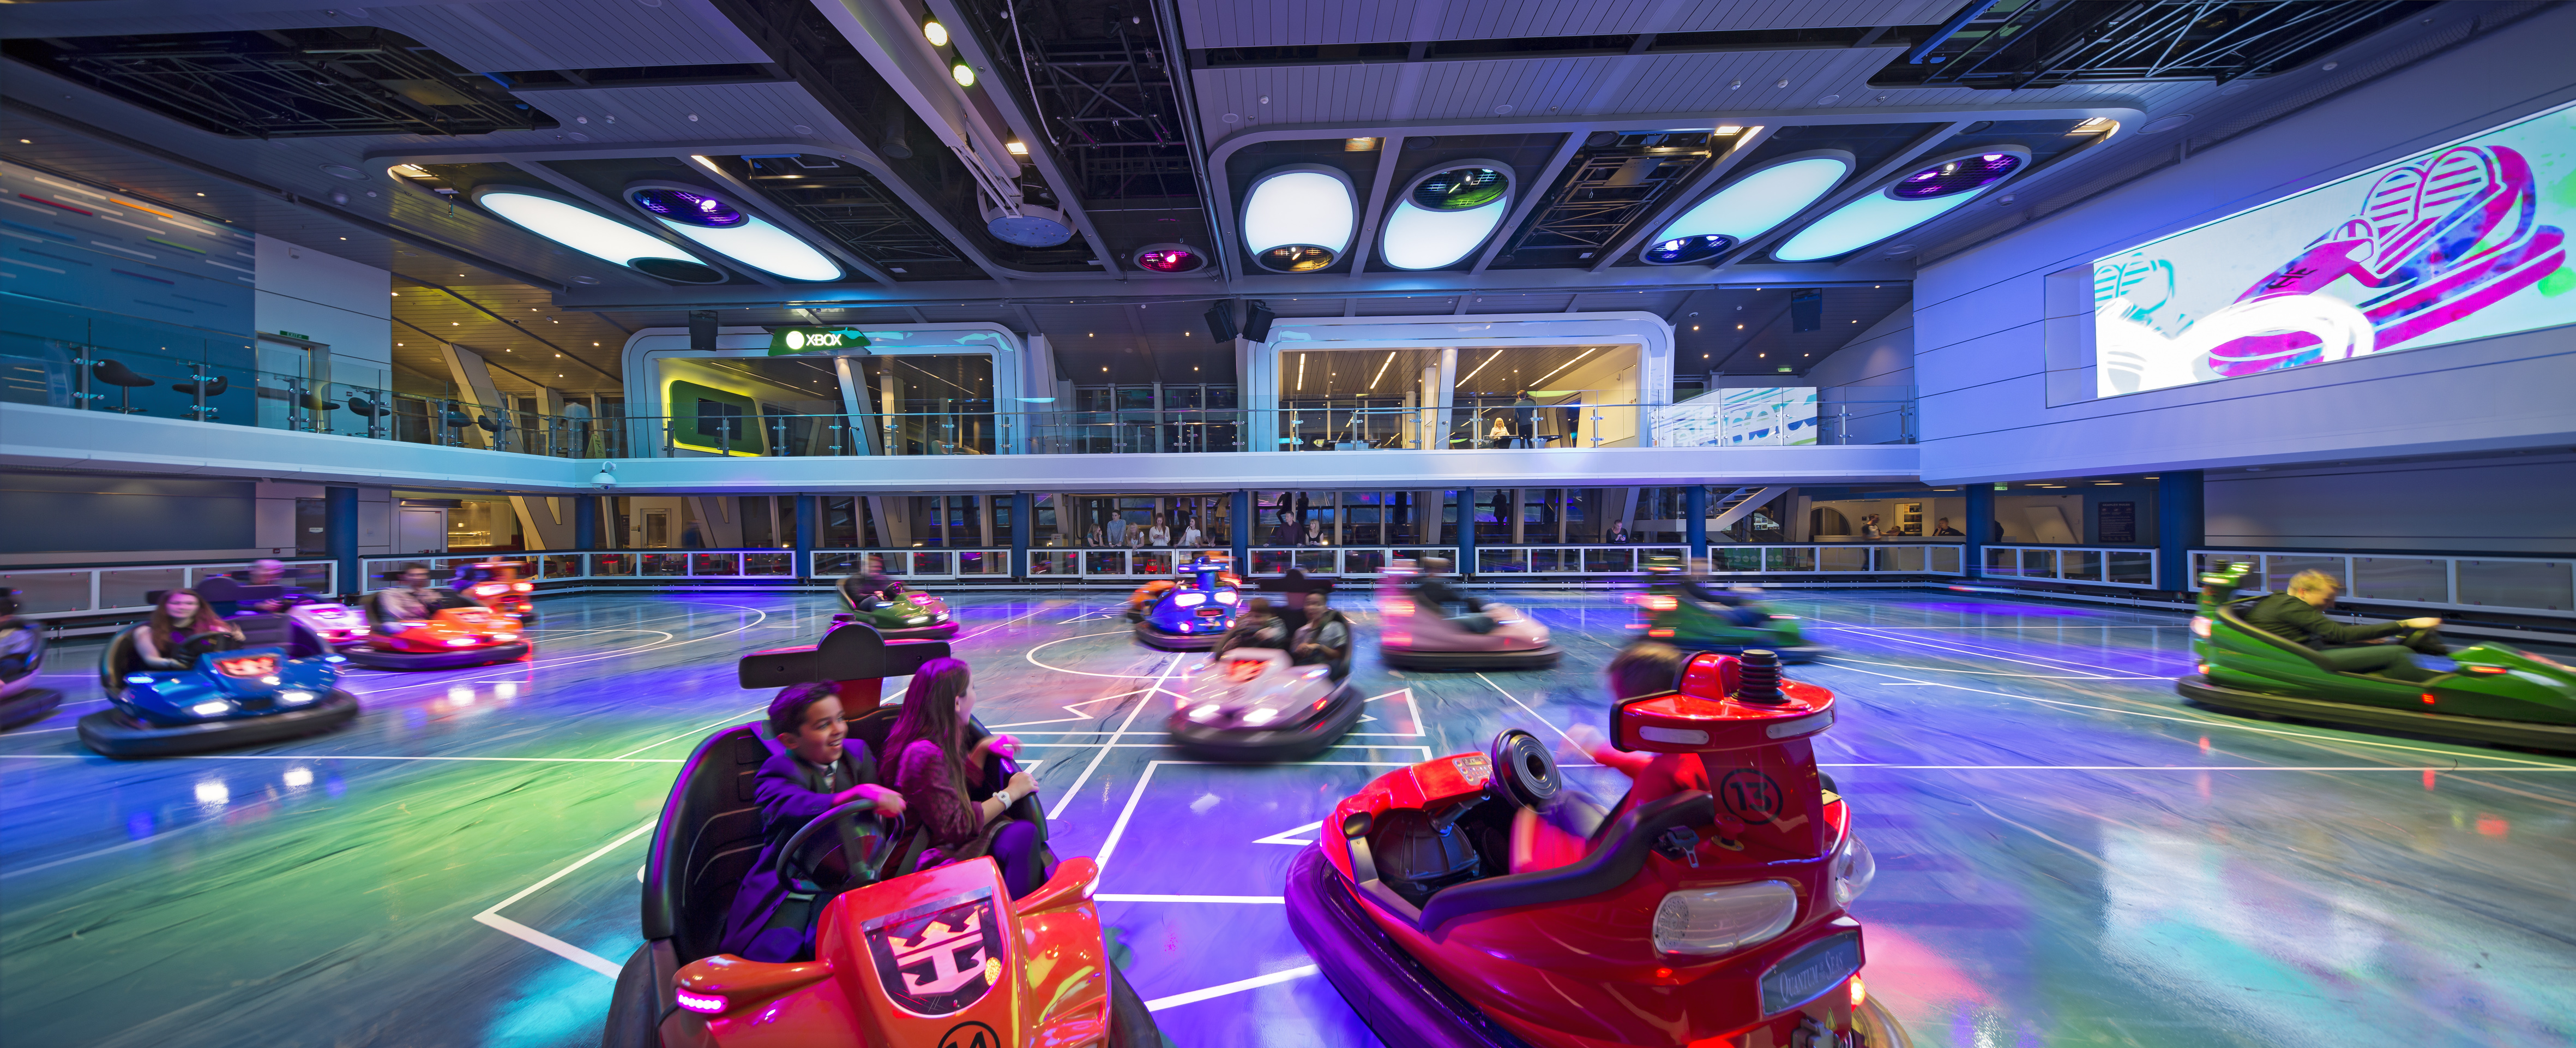 Bumper Cars on Royal Caribbean Cruises